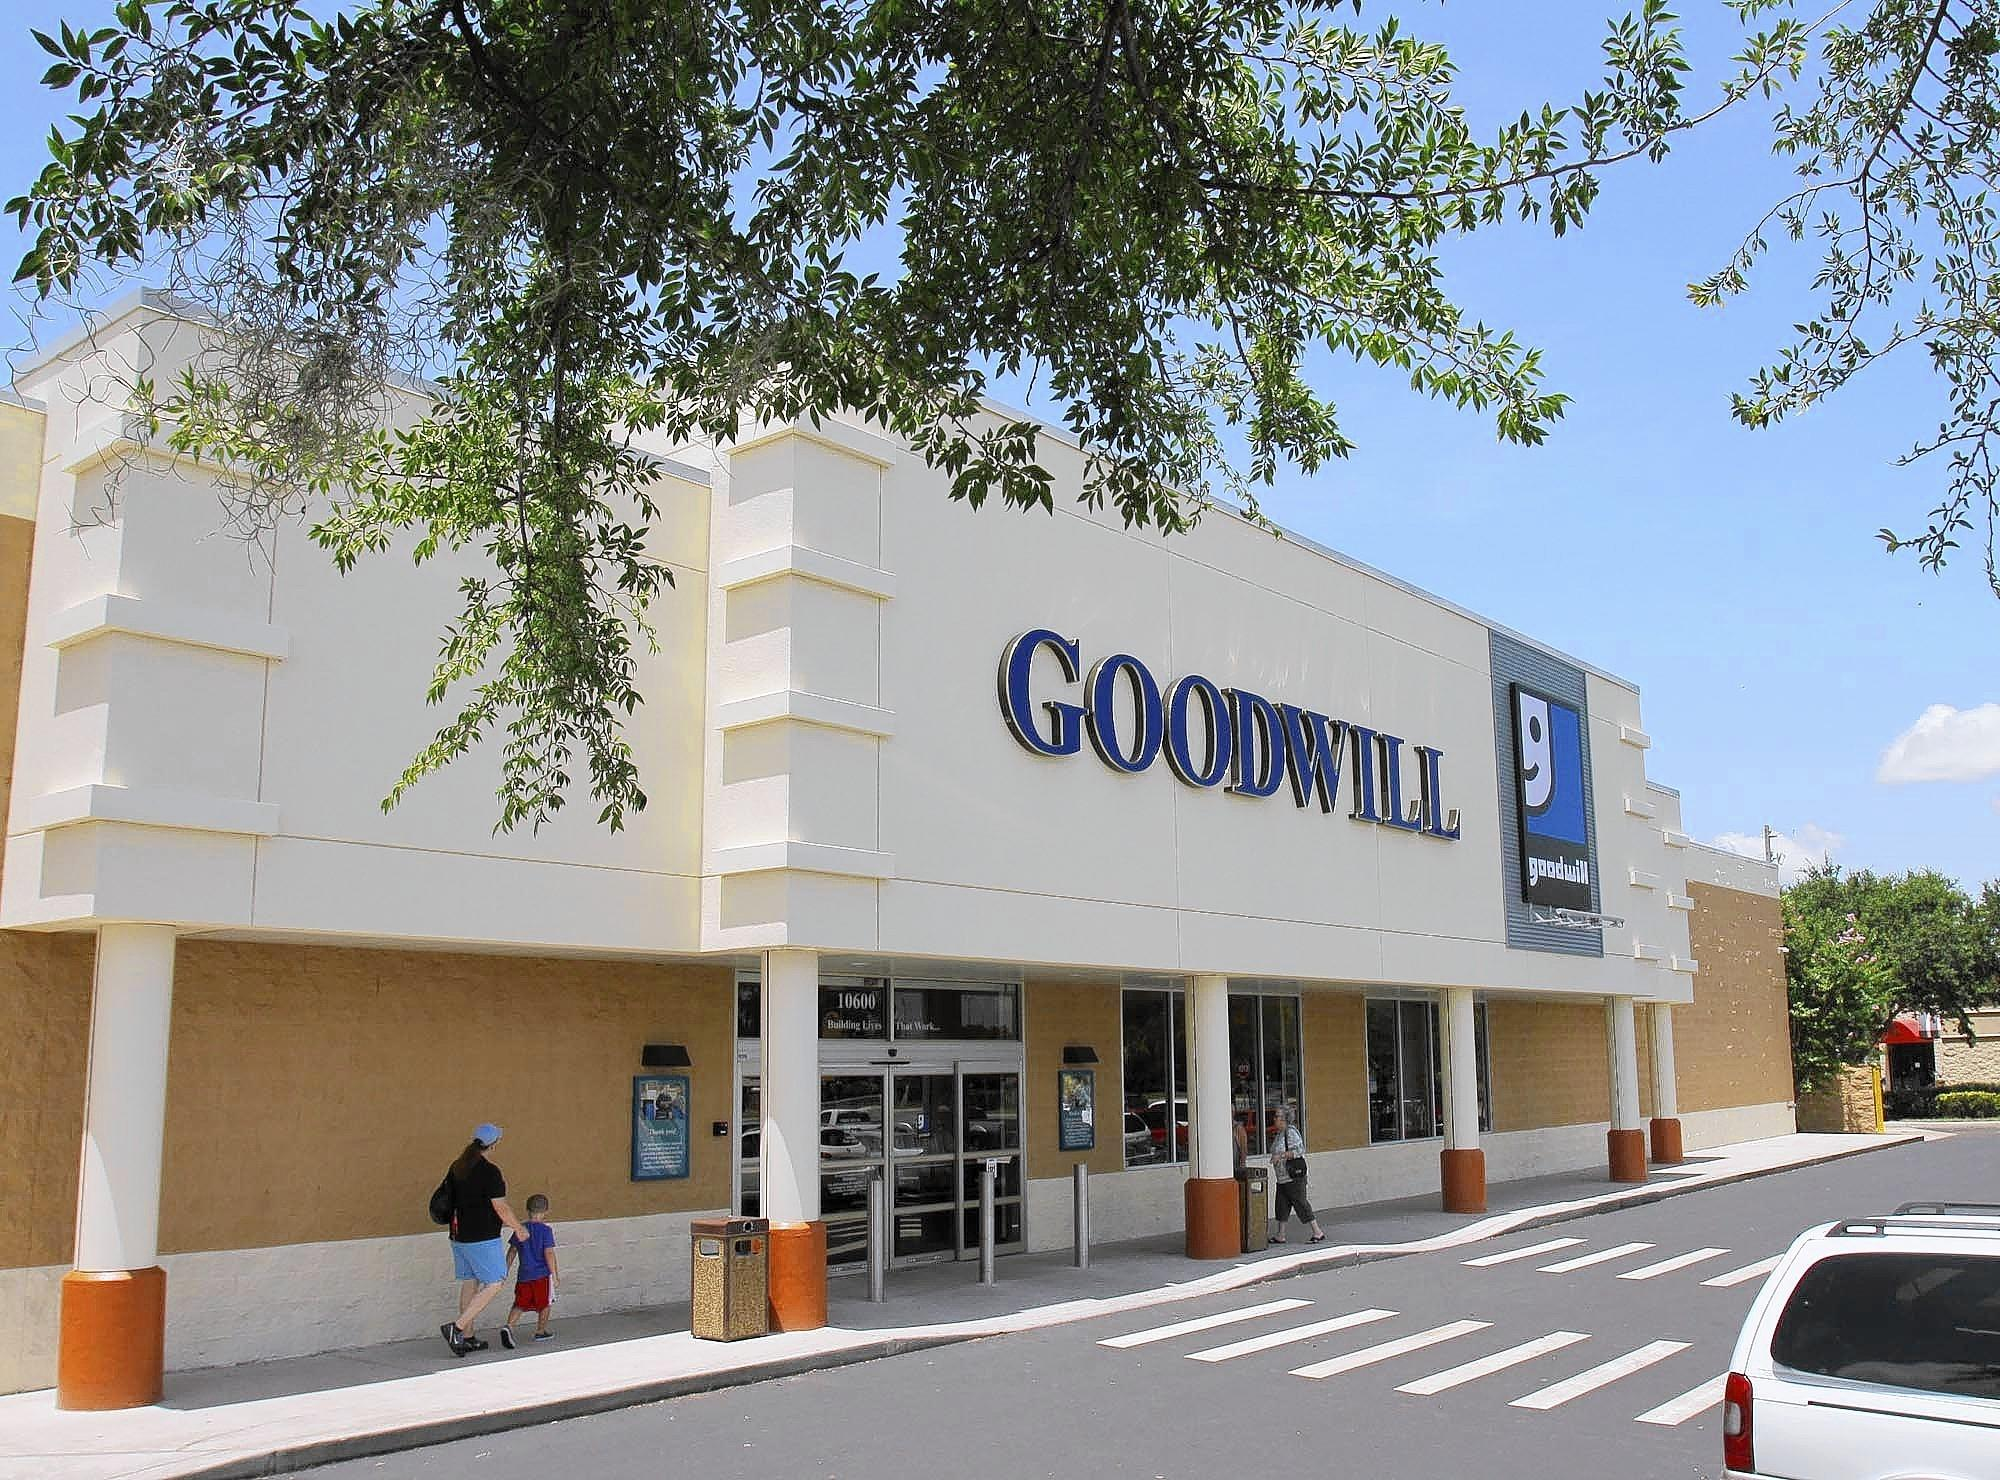 The new Goodwill store is open in Leesburg.